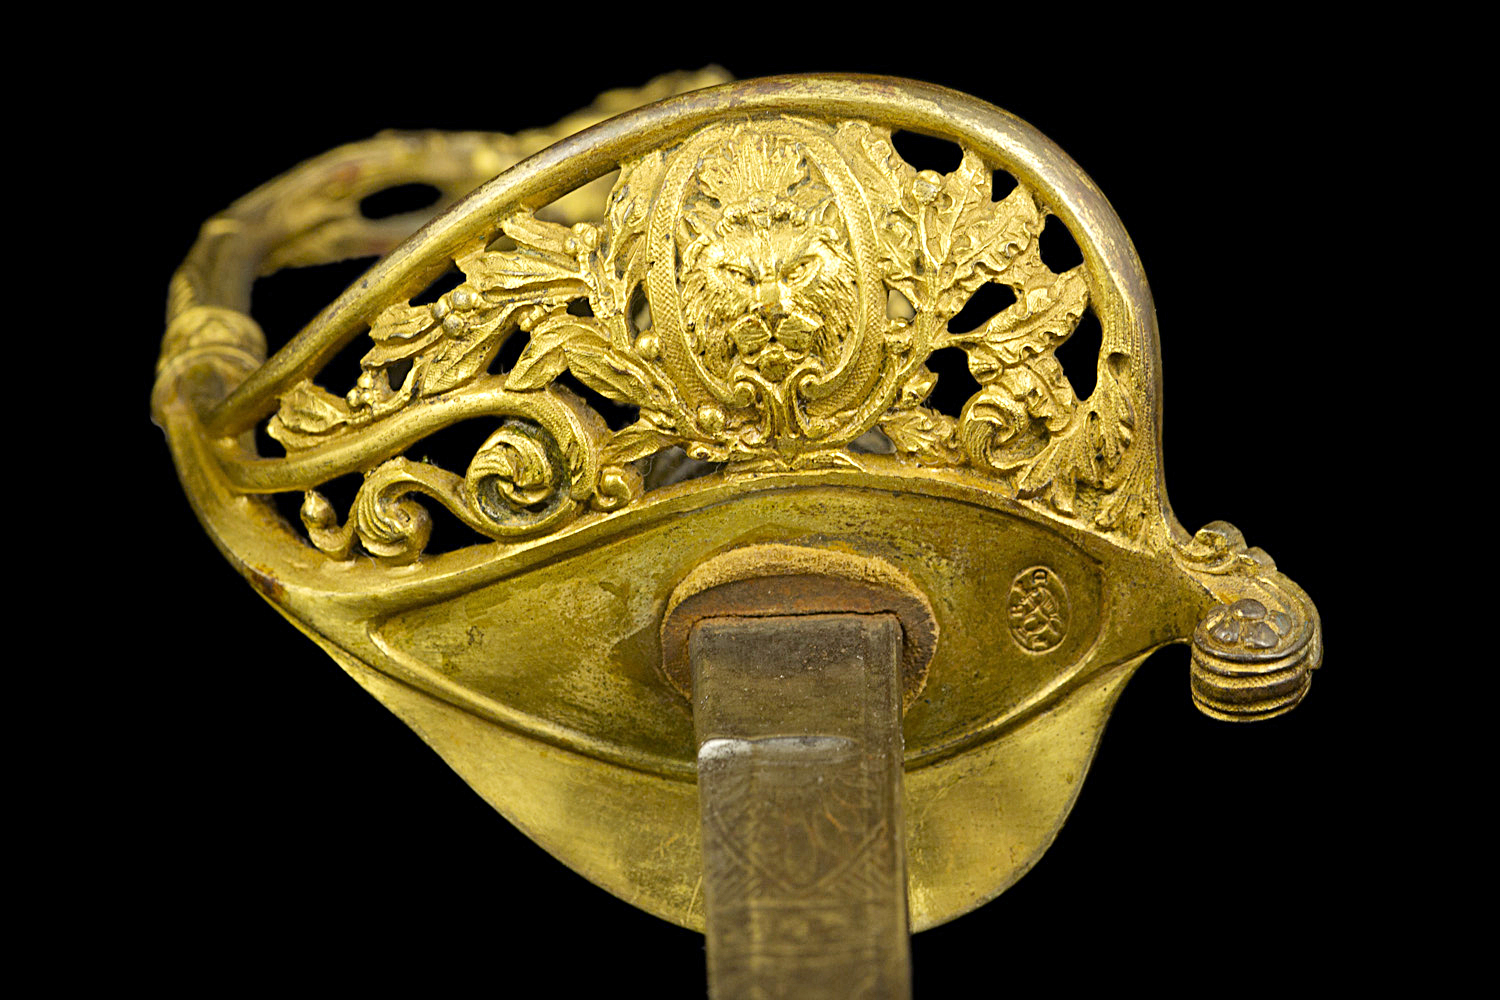 S000116_French_Lion_Saber_Detail_Hilt_Bottom